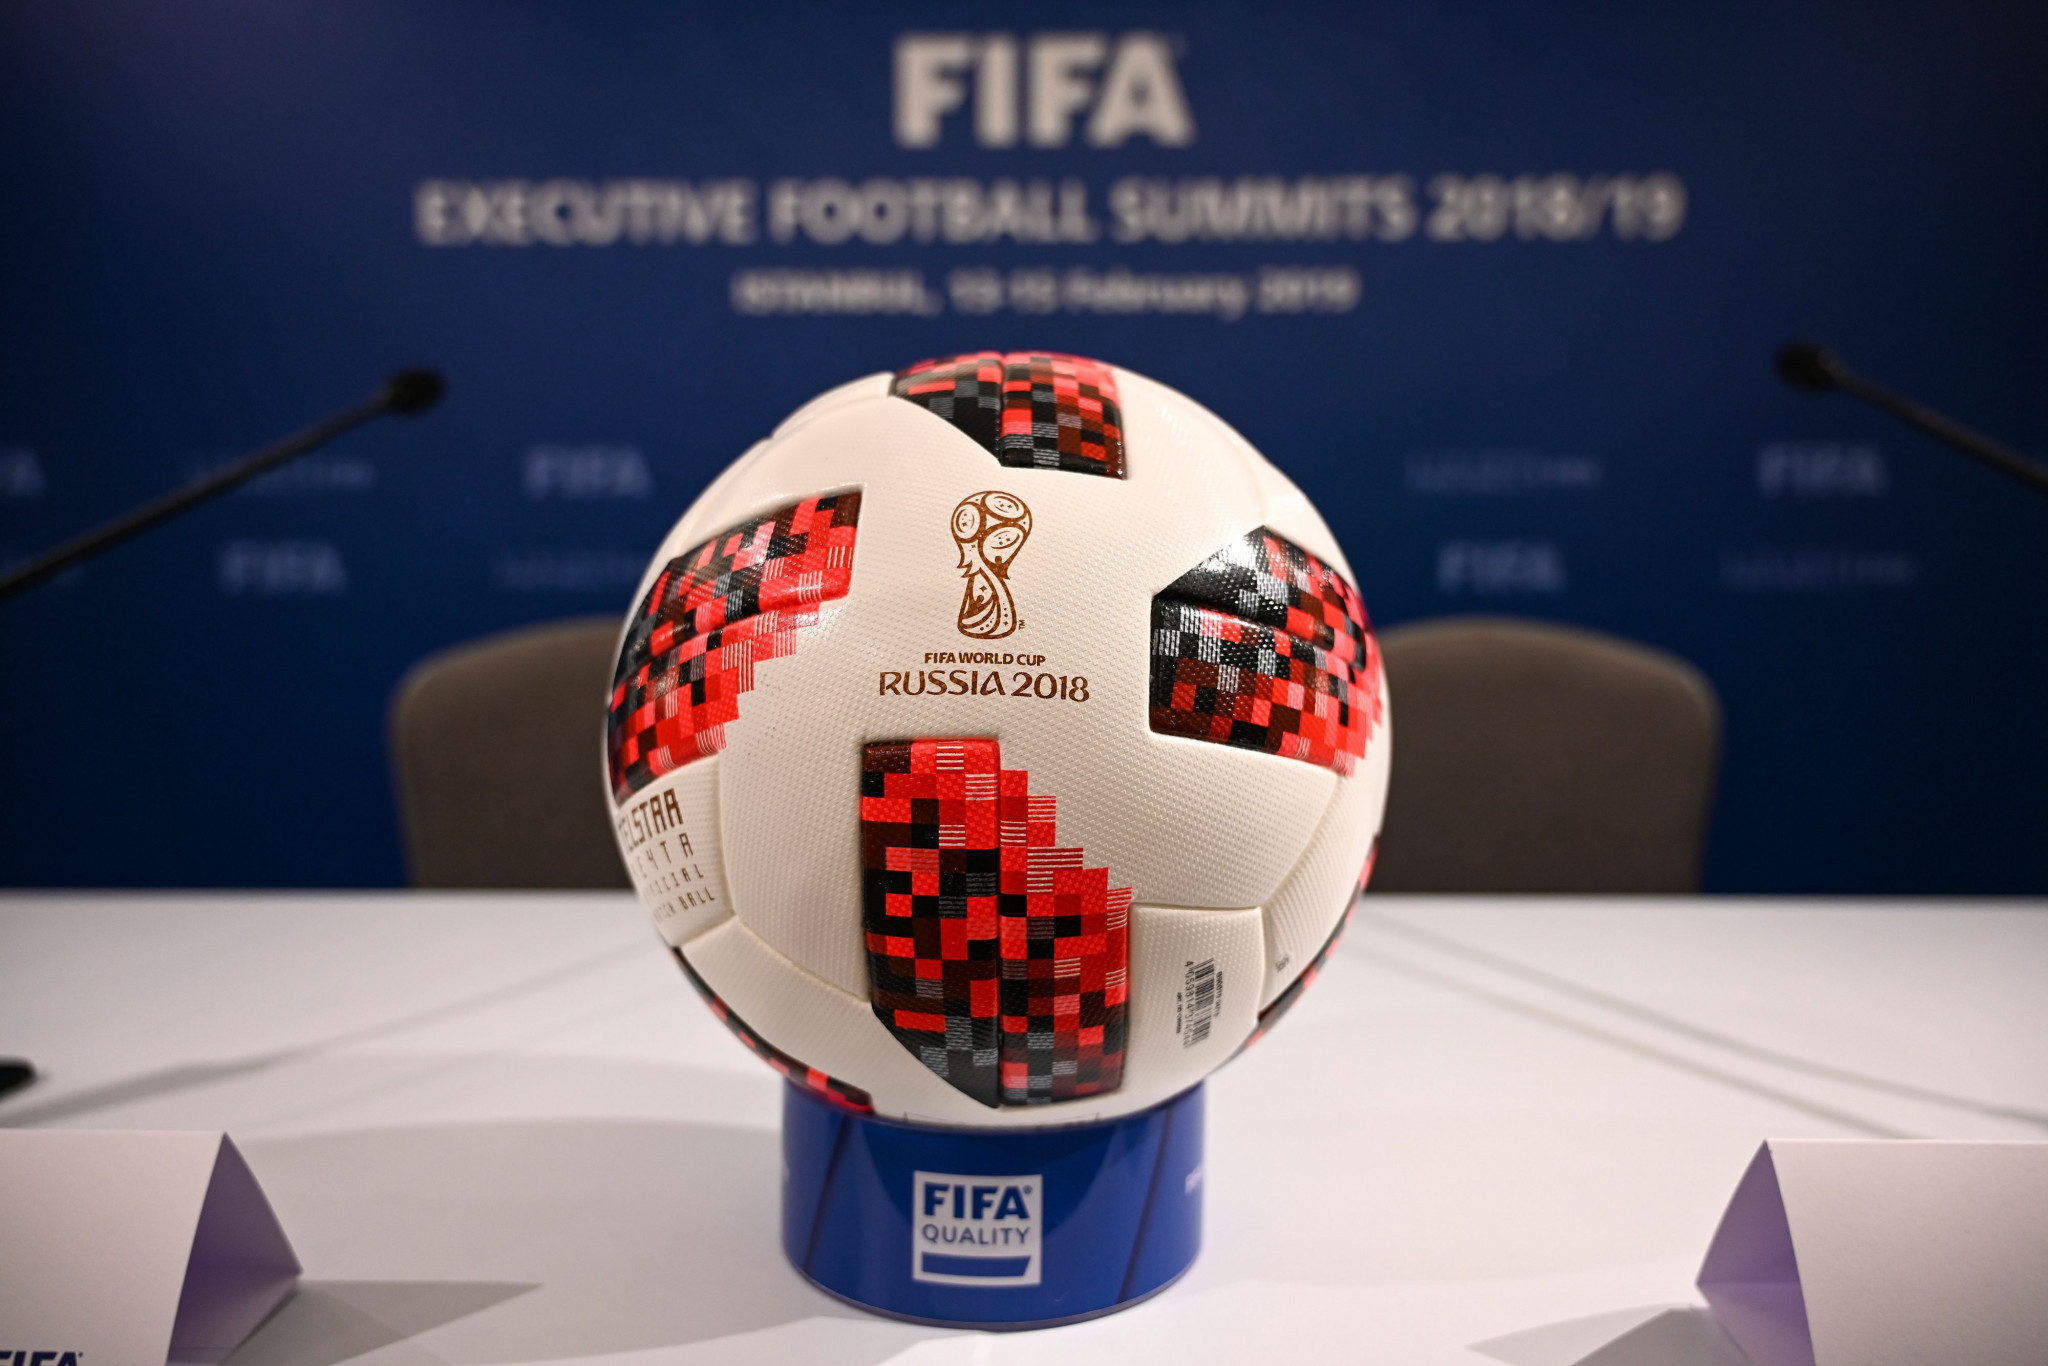 The Russian doping scandal dominated the build-up to the 2018 FIFA World Cup in the country ©Getty Images